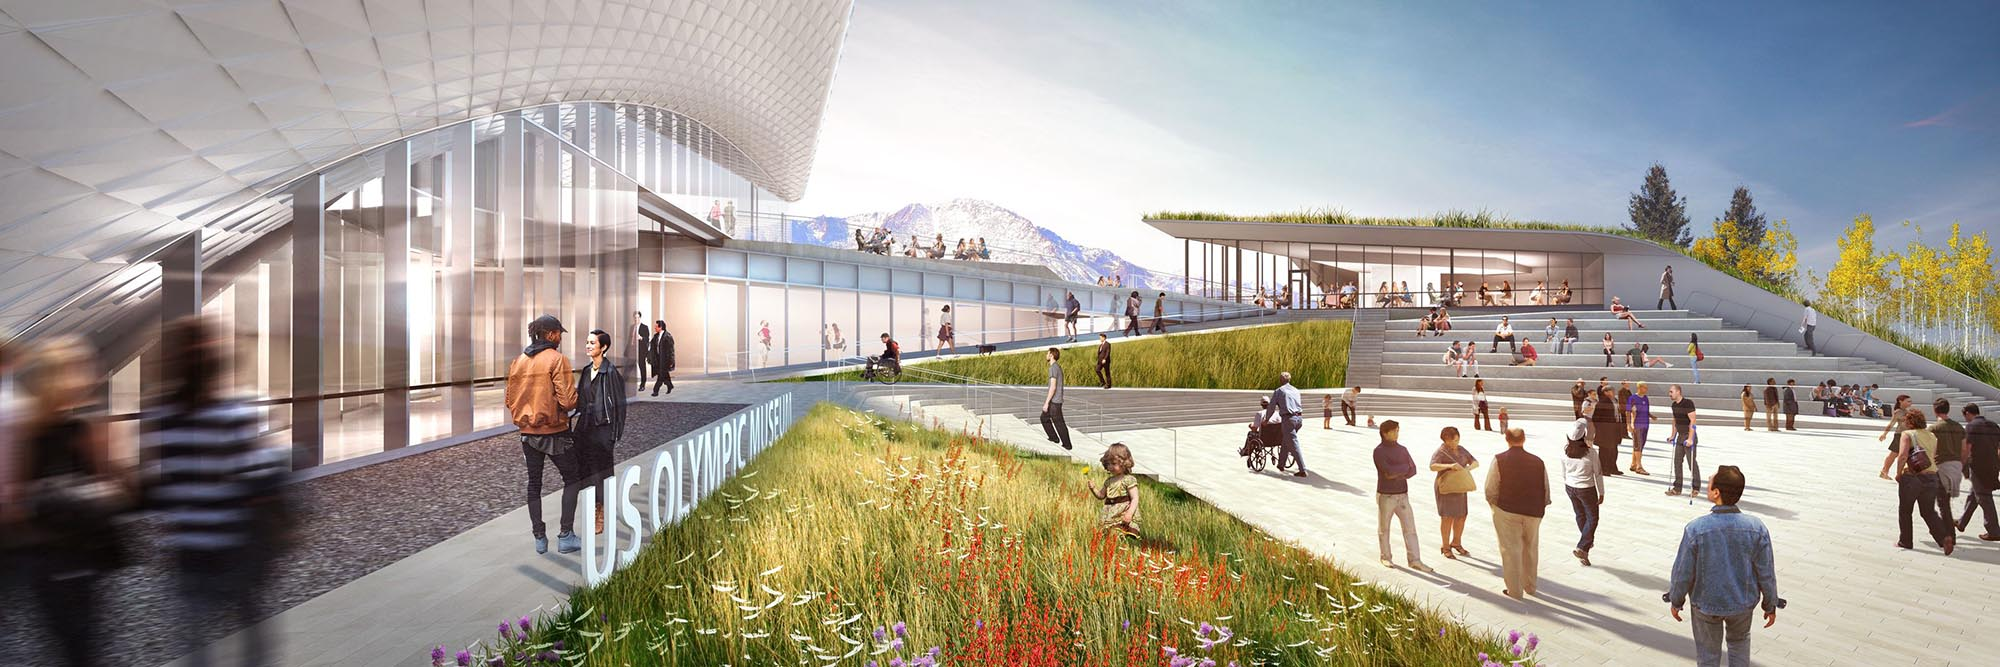 mm_United States Olympic Museum design by Diller Scofidio + Renfro _05